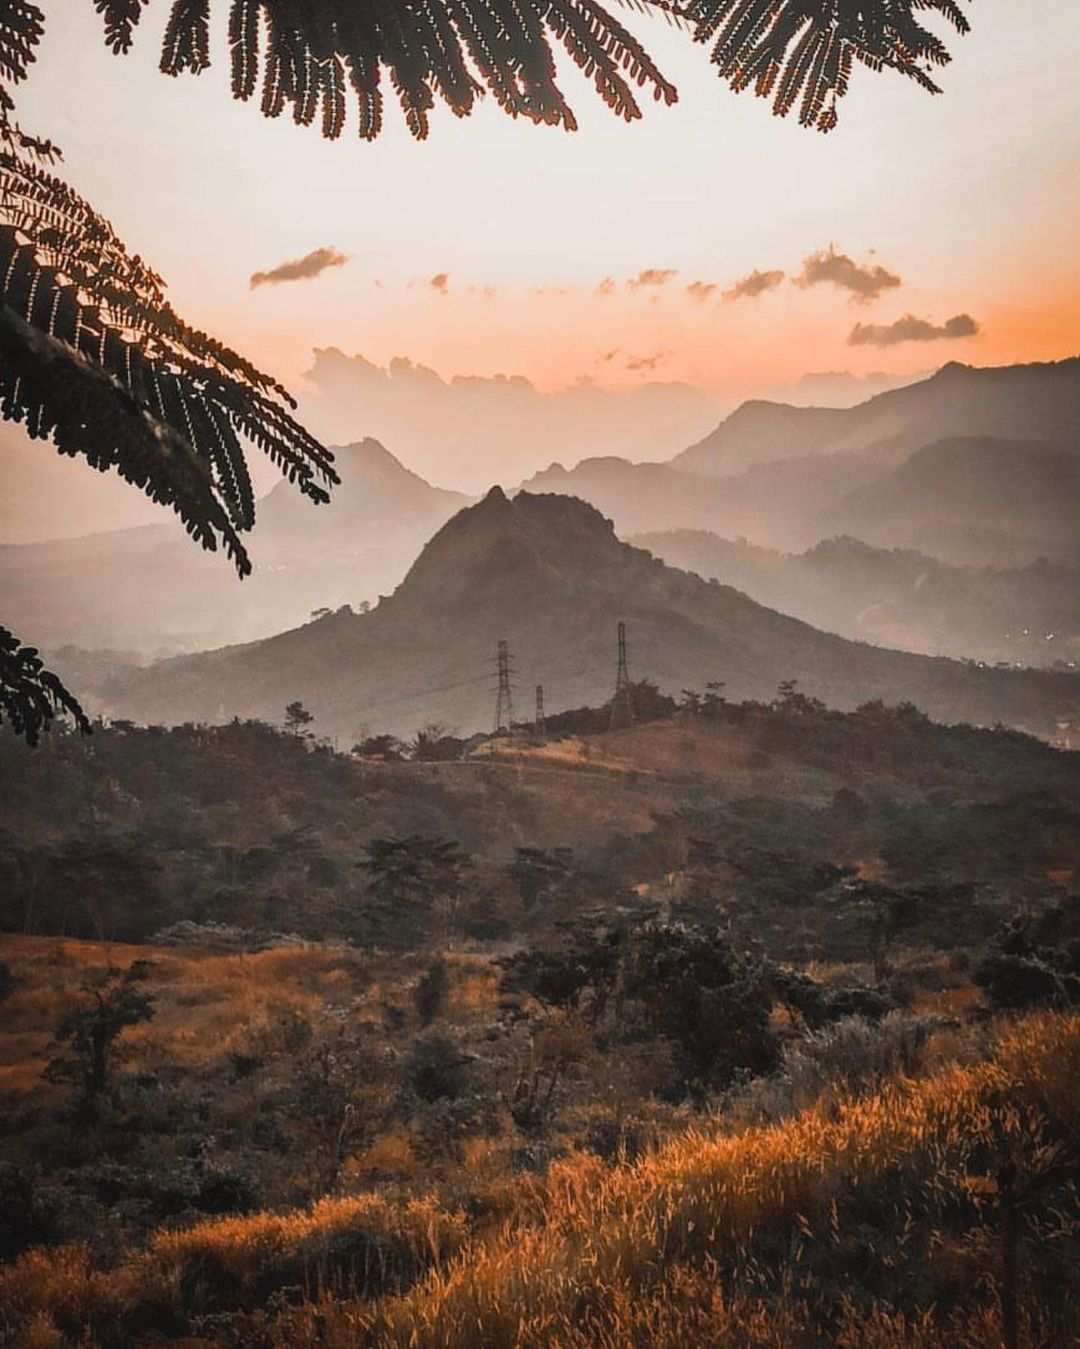 Pemandangan di Hidden Valley Hills Purwakarta Image From @why_ajie